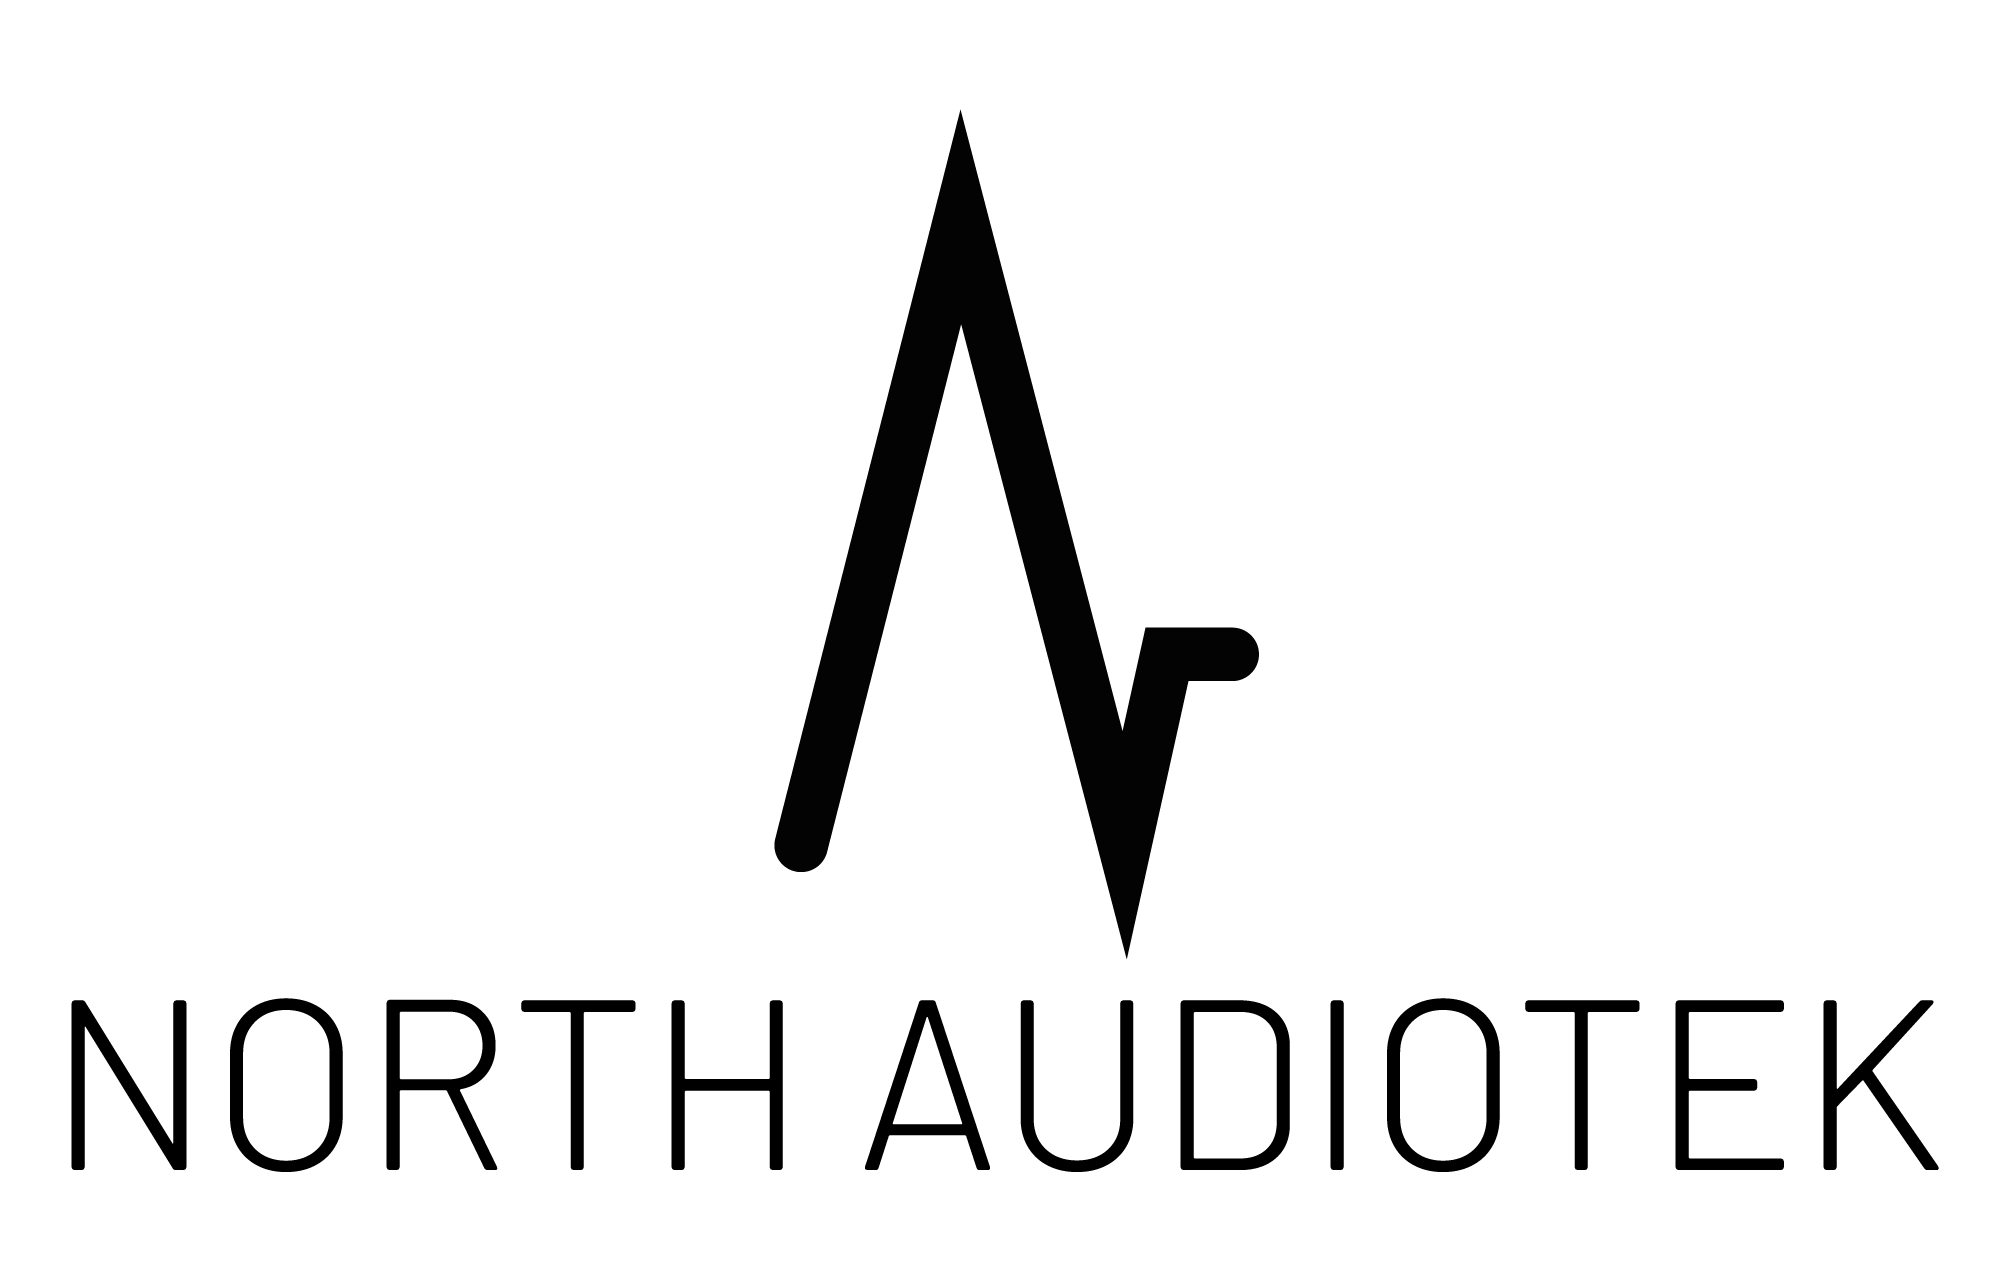 NorthAudioTEK_Black-01.png